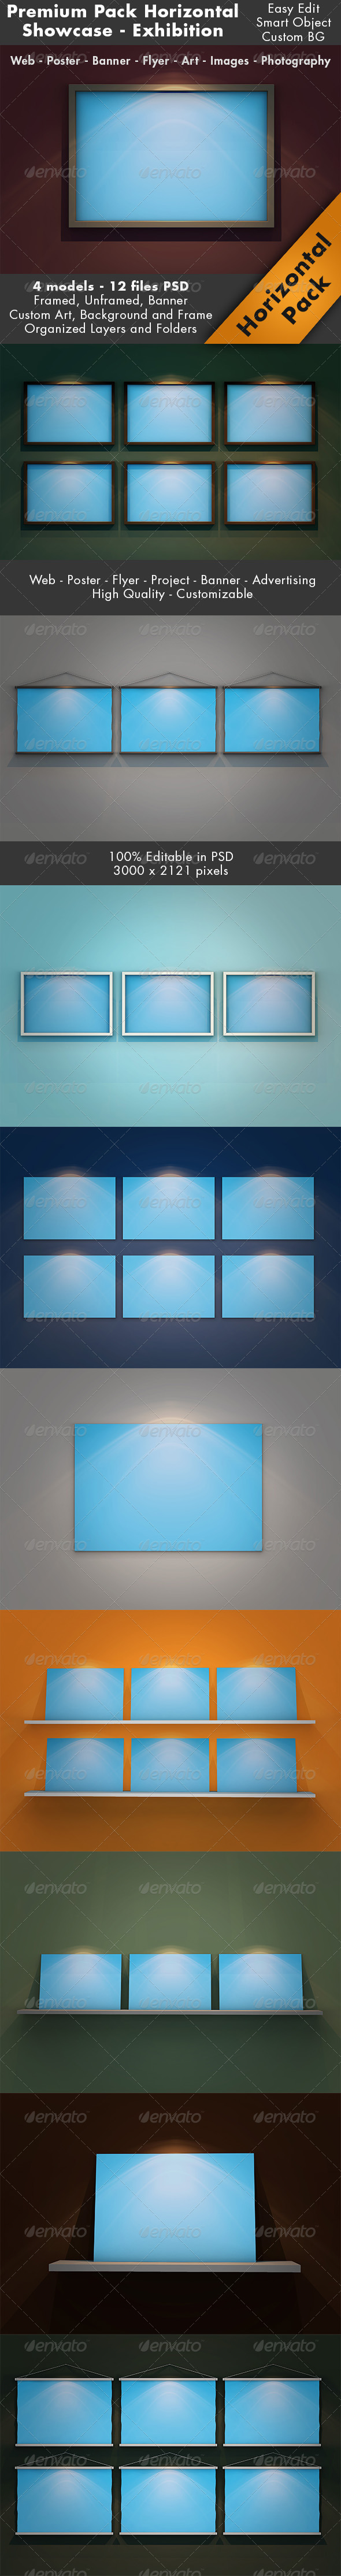 Horizontal Showcase Mockup Pack - Website Displays